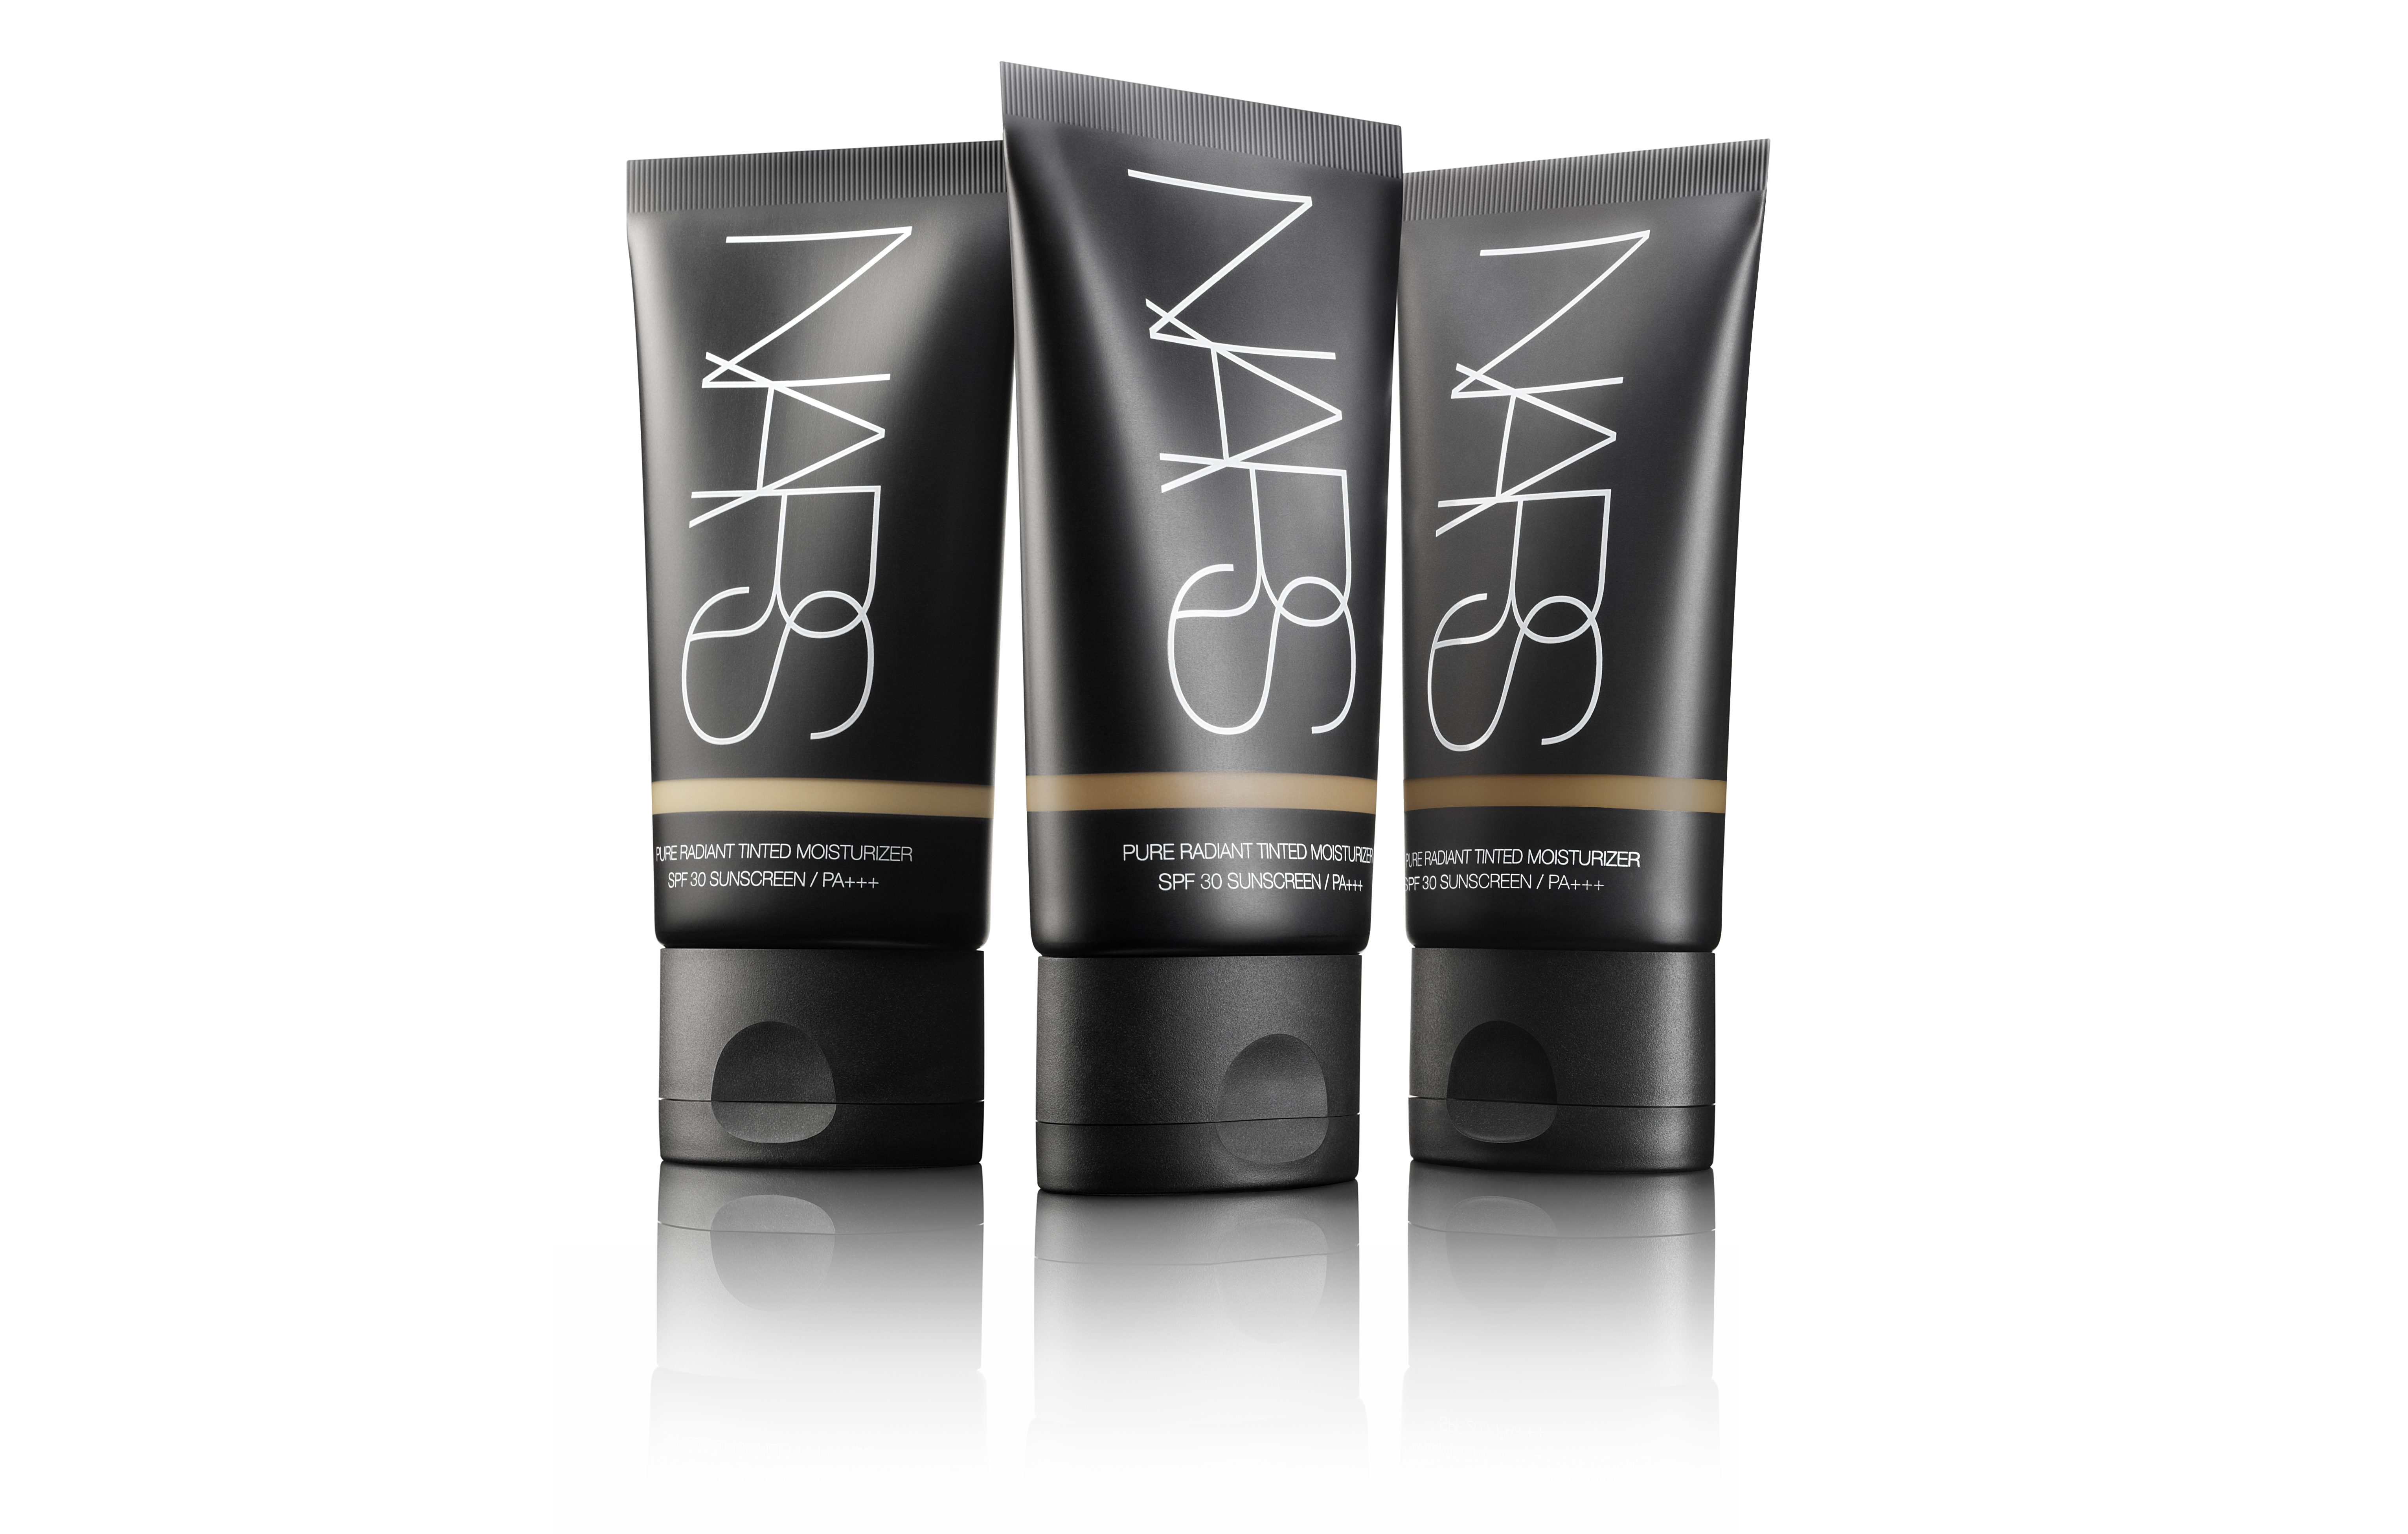 NARS-Pure-Radiant-Tinted-Moisturizer-3-group-lo-res